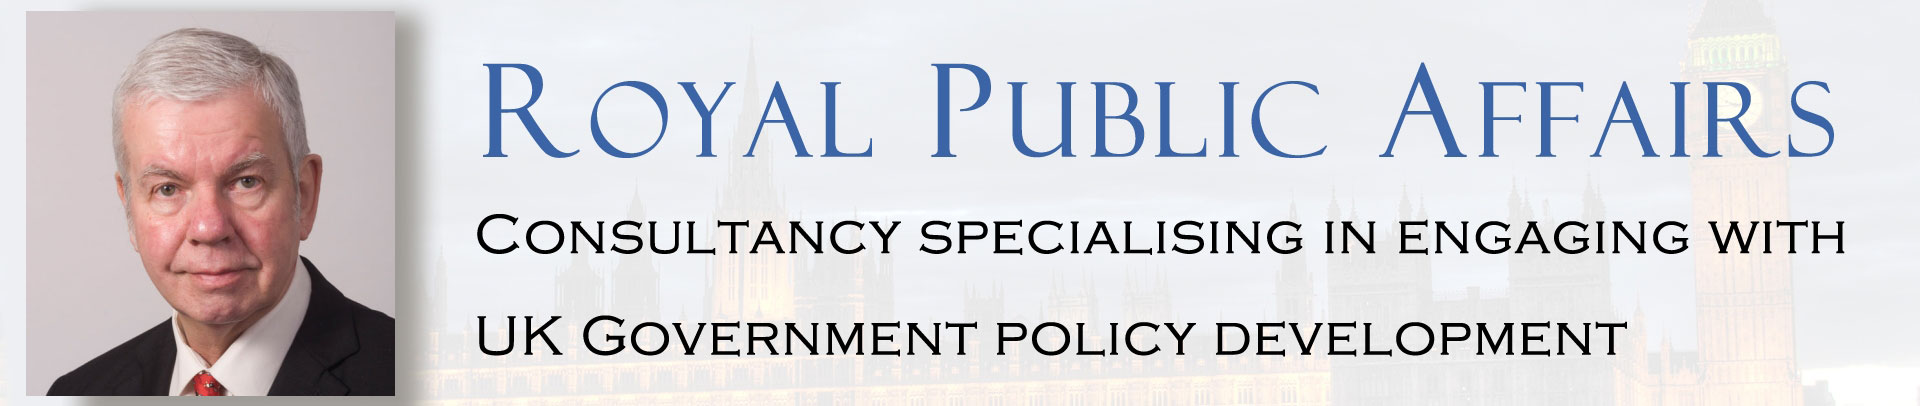 Royal Public Affairs